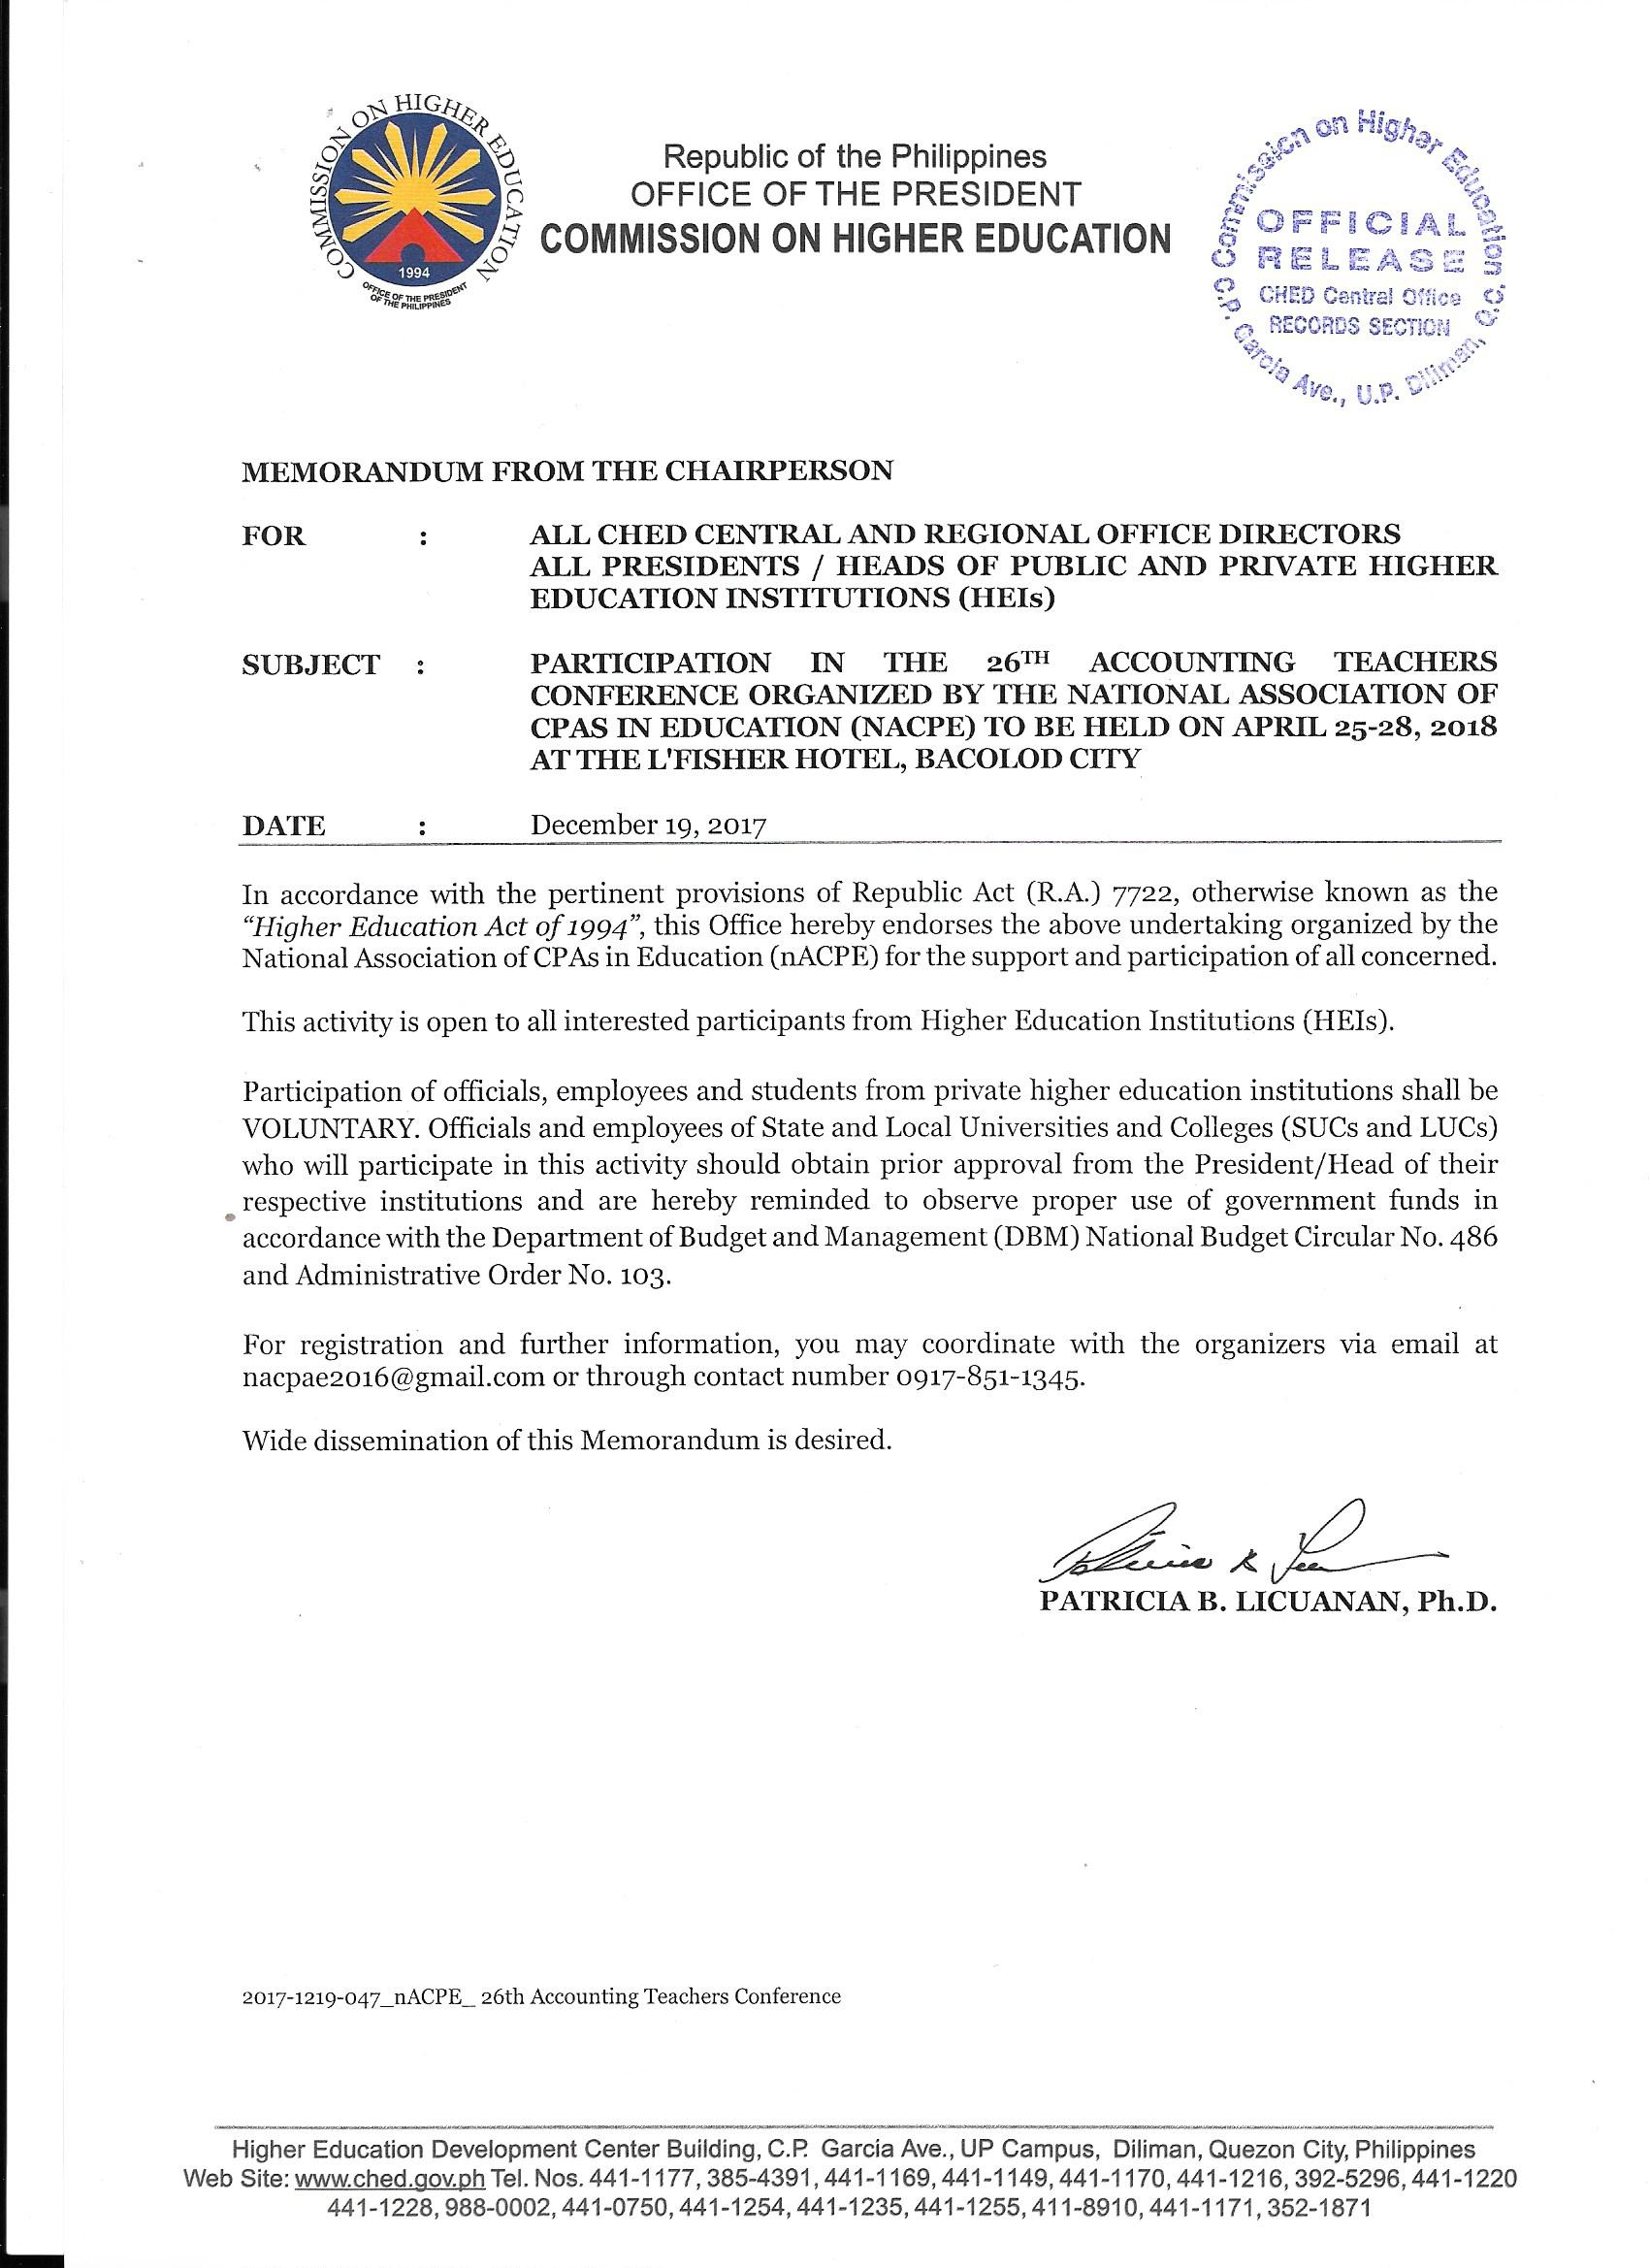 CHED Endorsement for 26th ATC